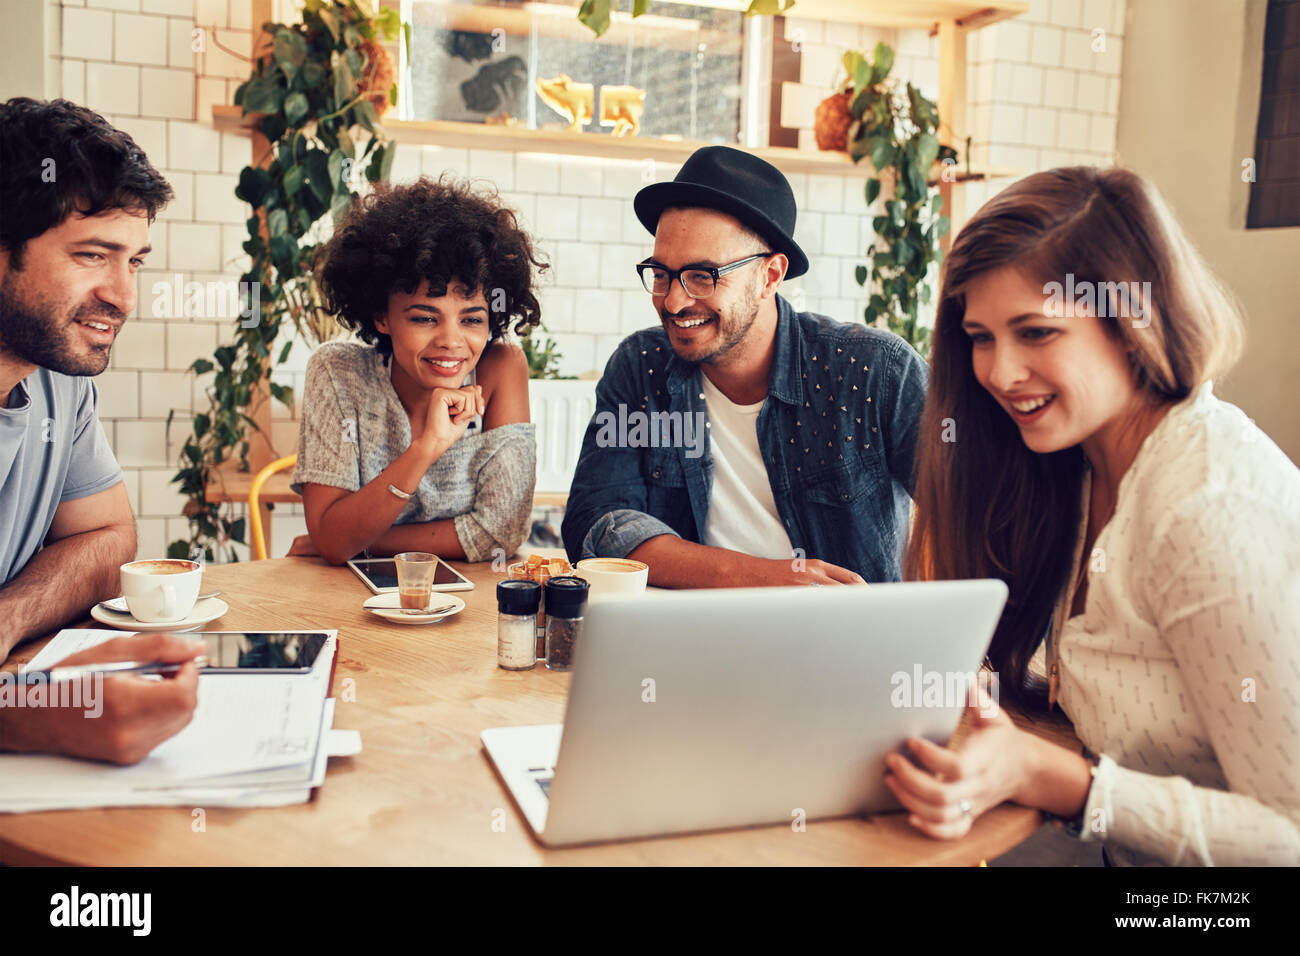 Group of friends hanging out in a coffee shop with a laptop amongst them. Happy young people sitting at restaurant - Stock Image